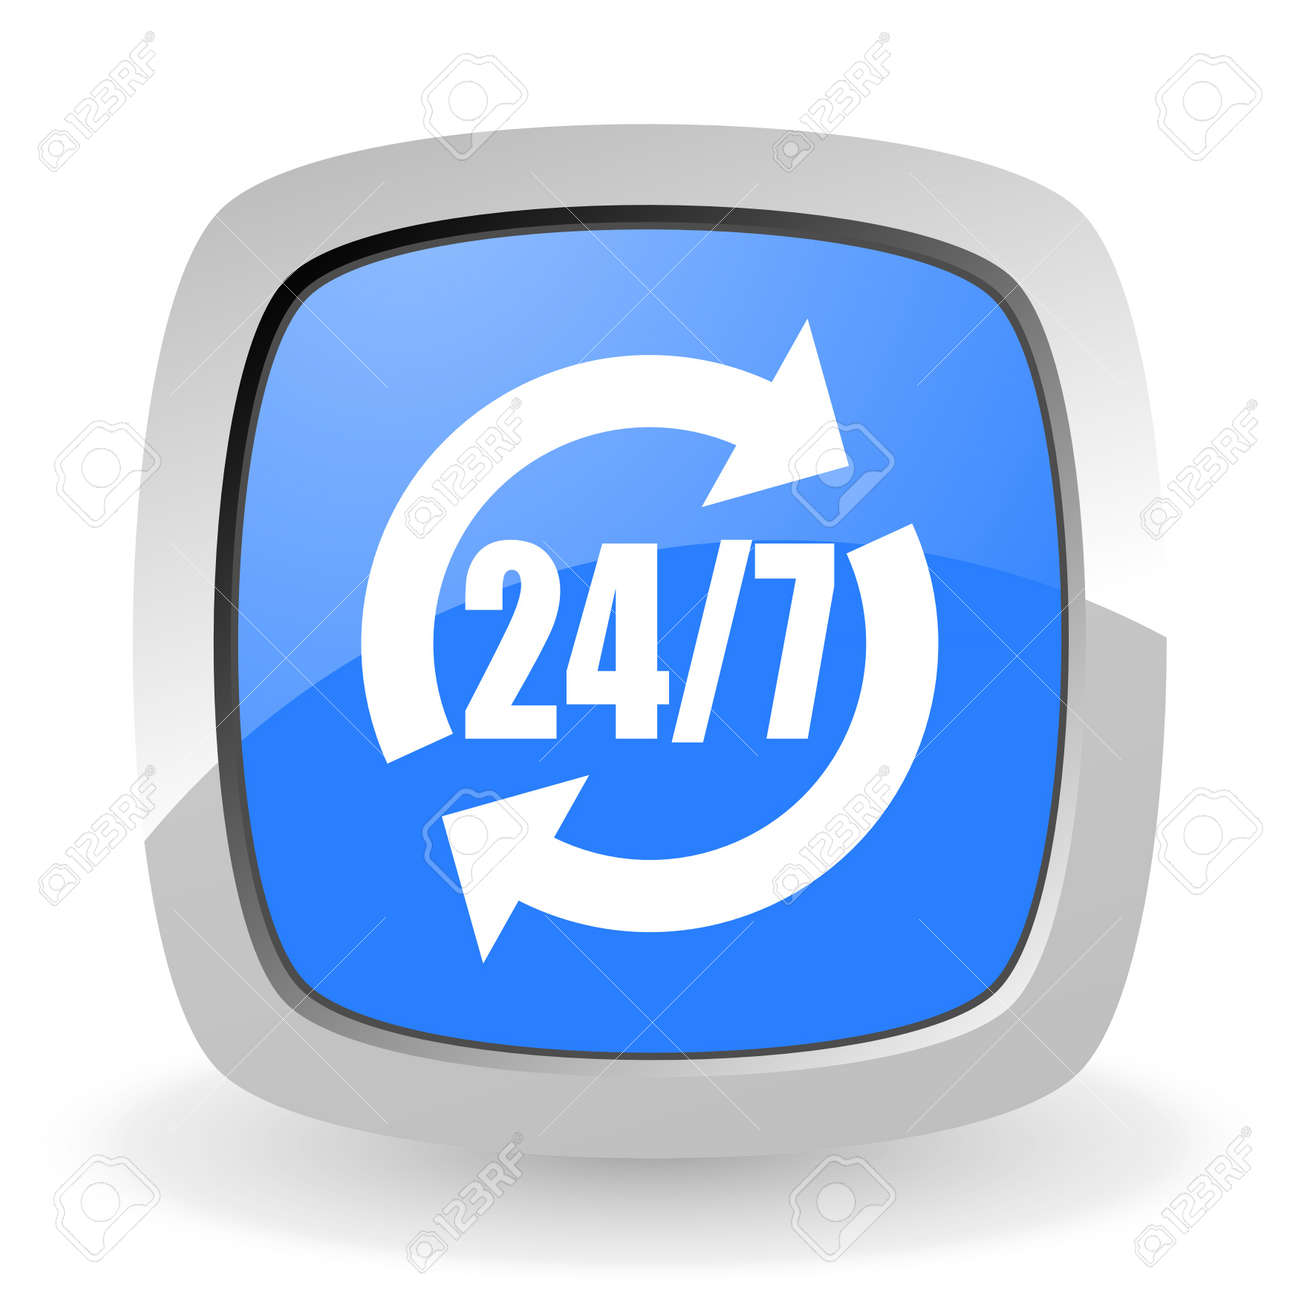 24 7 service icon Stock Photo - 12965816